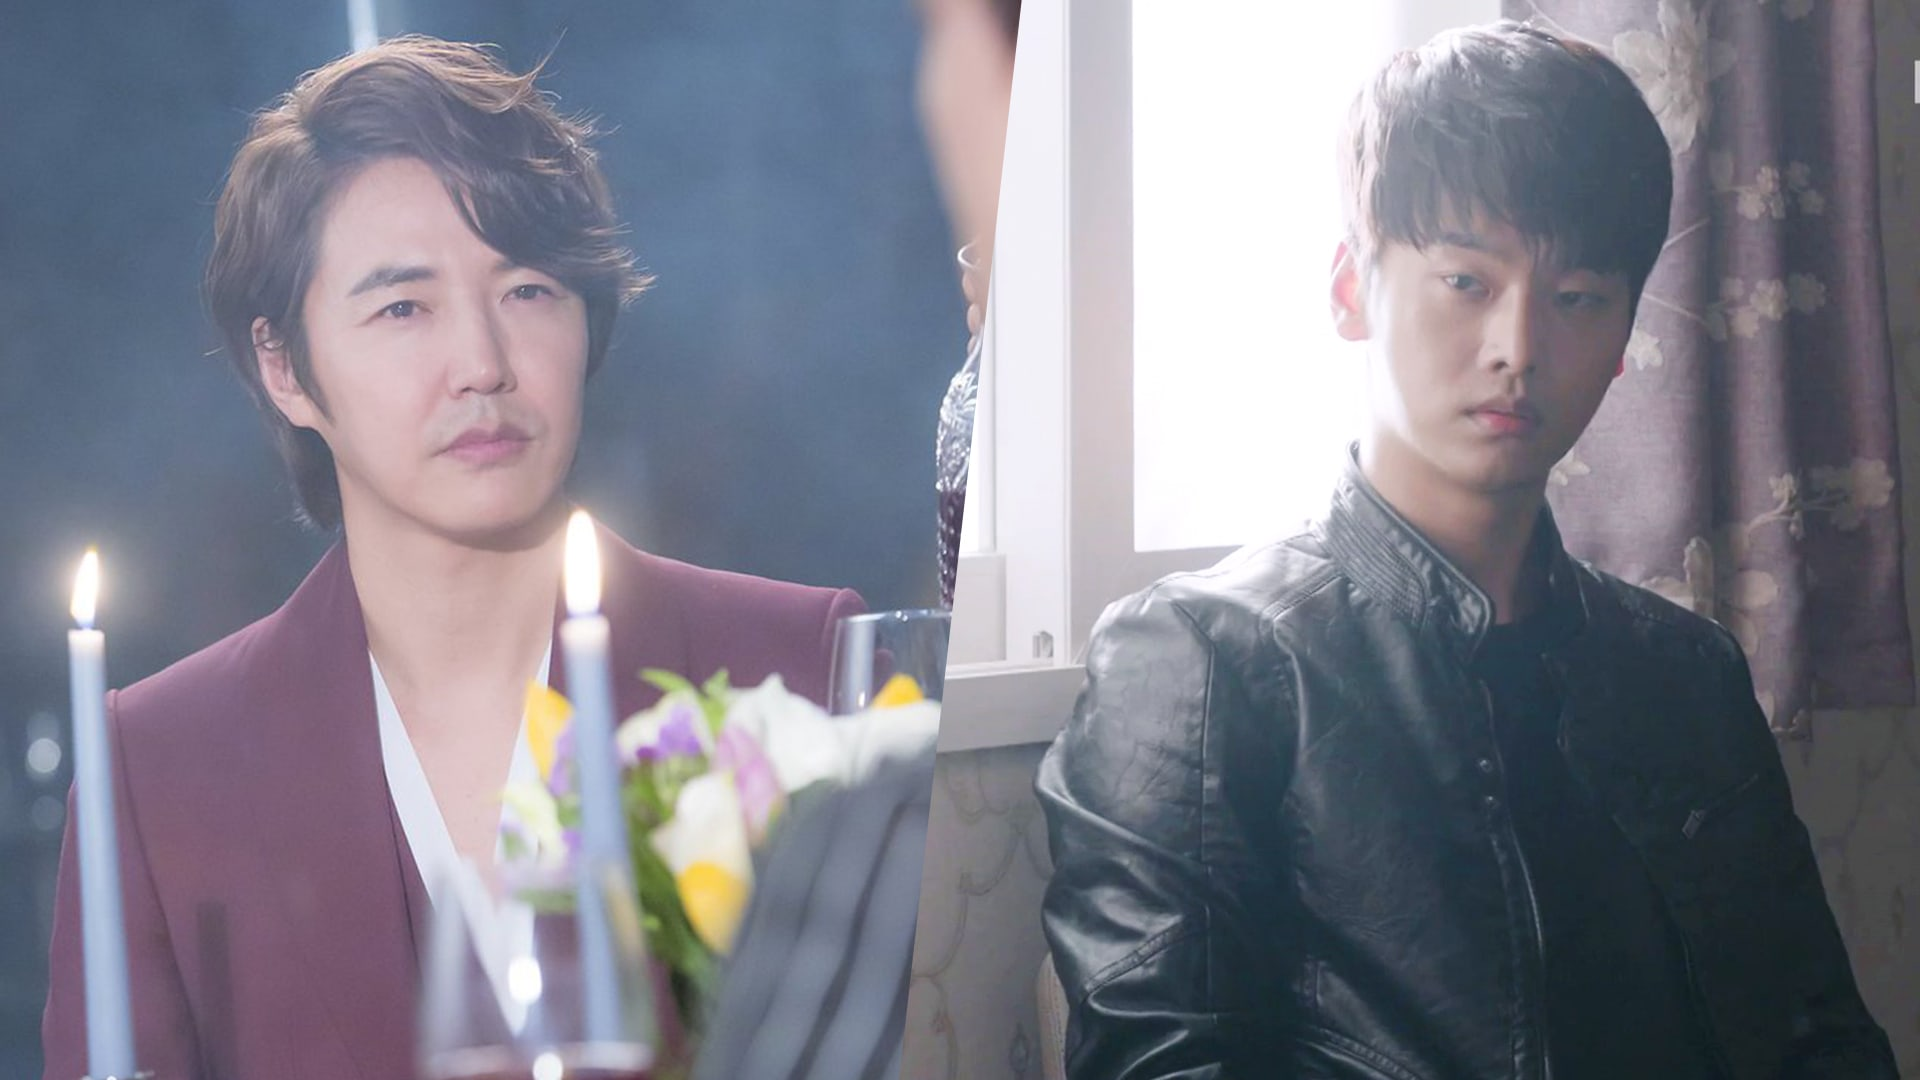 VIXXs N And Yoon Sang Hyun Share Their Sentiments About The End Of Perfect Wife